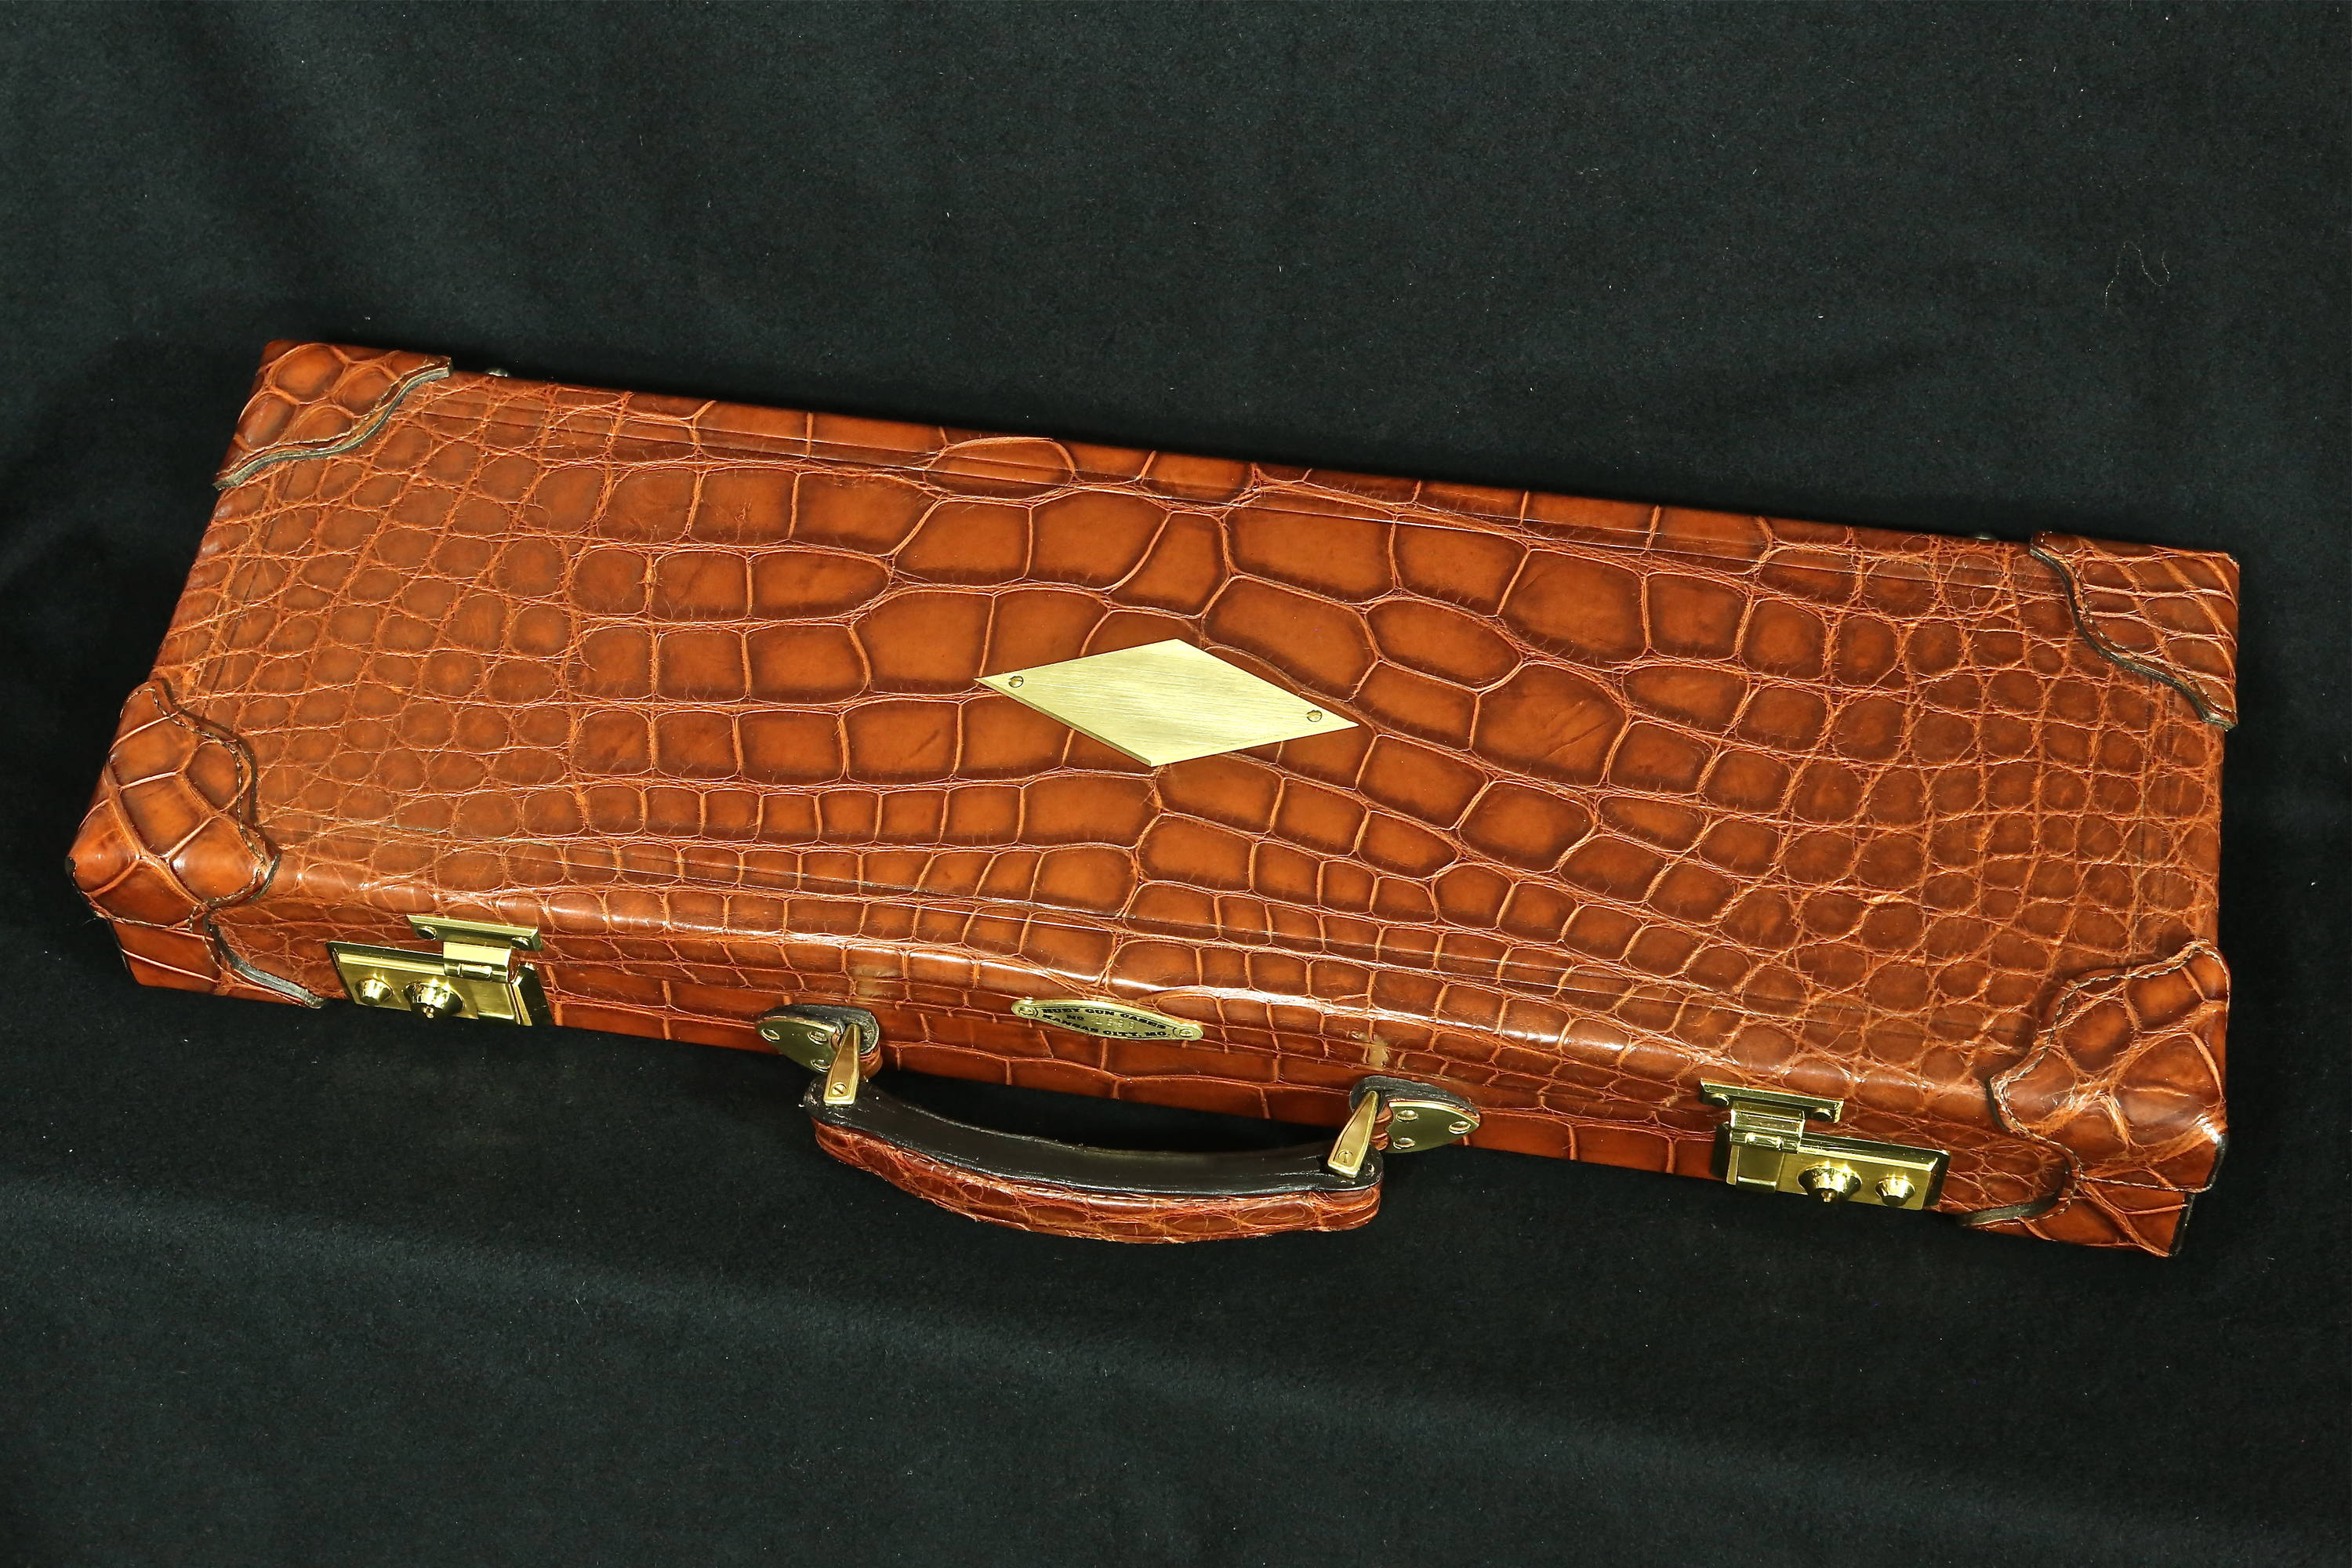 Alligator bound case for large Bowie knife